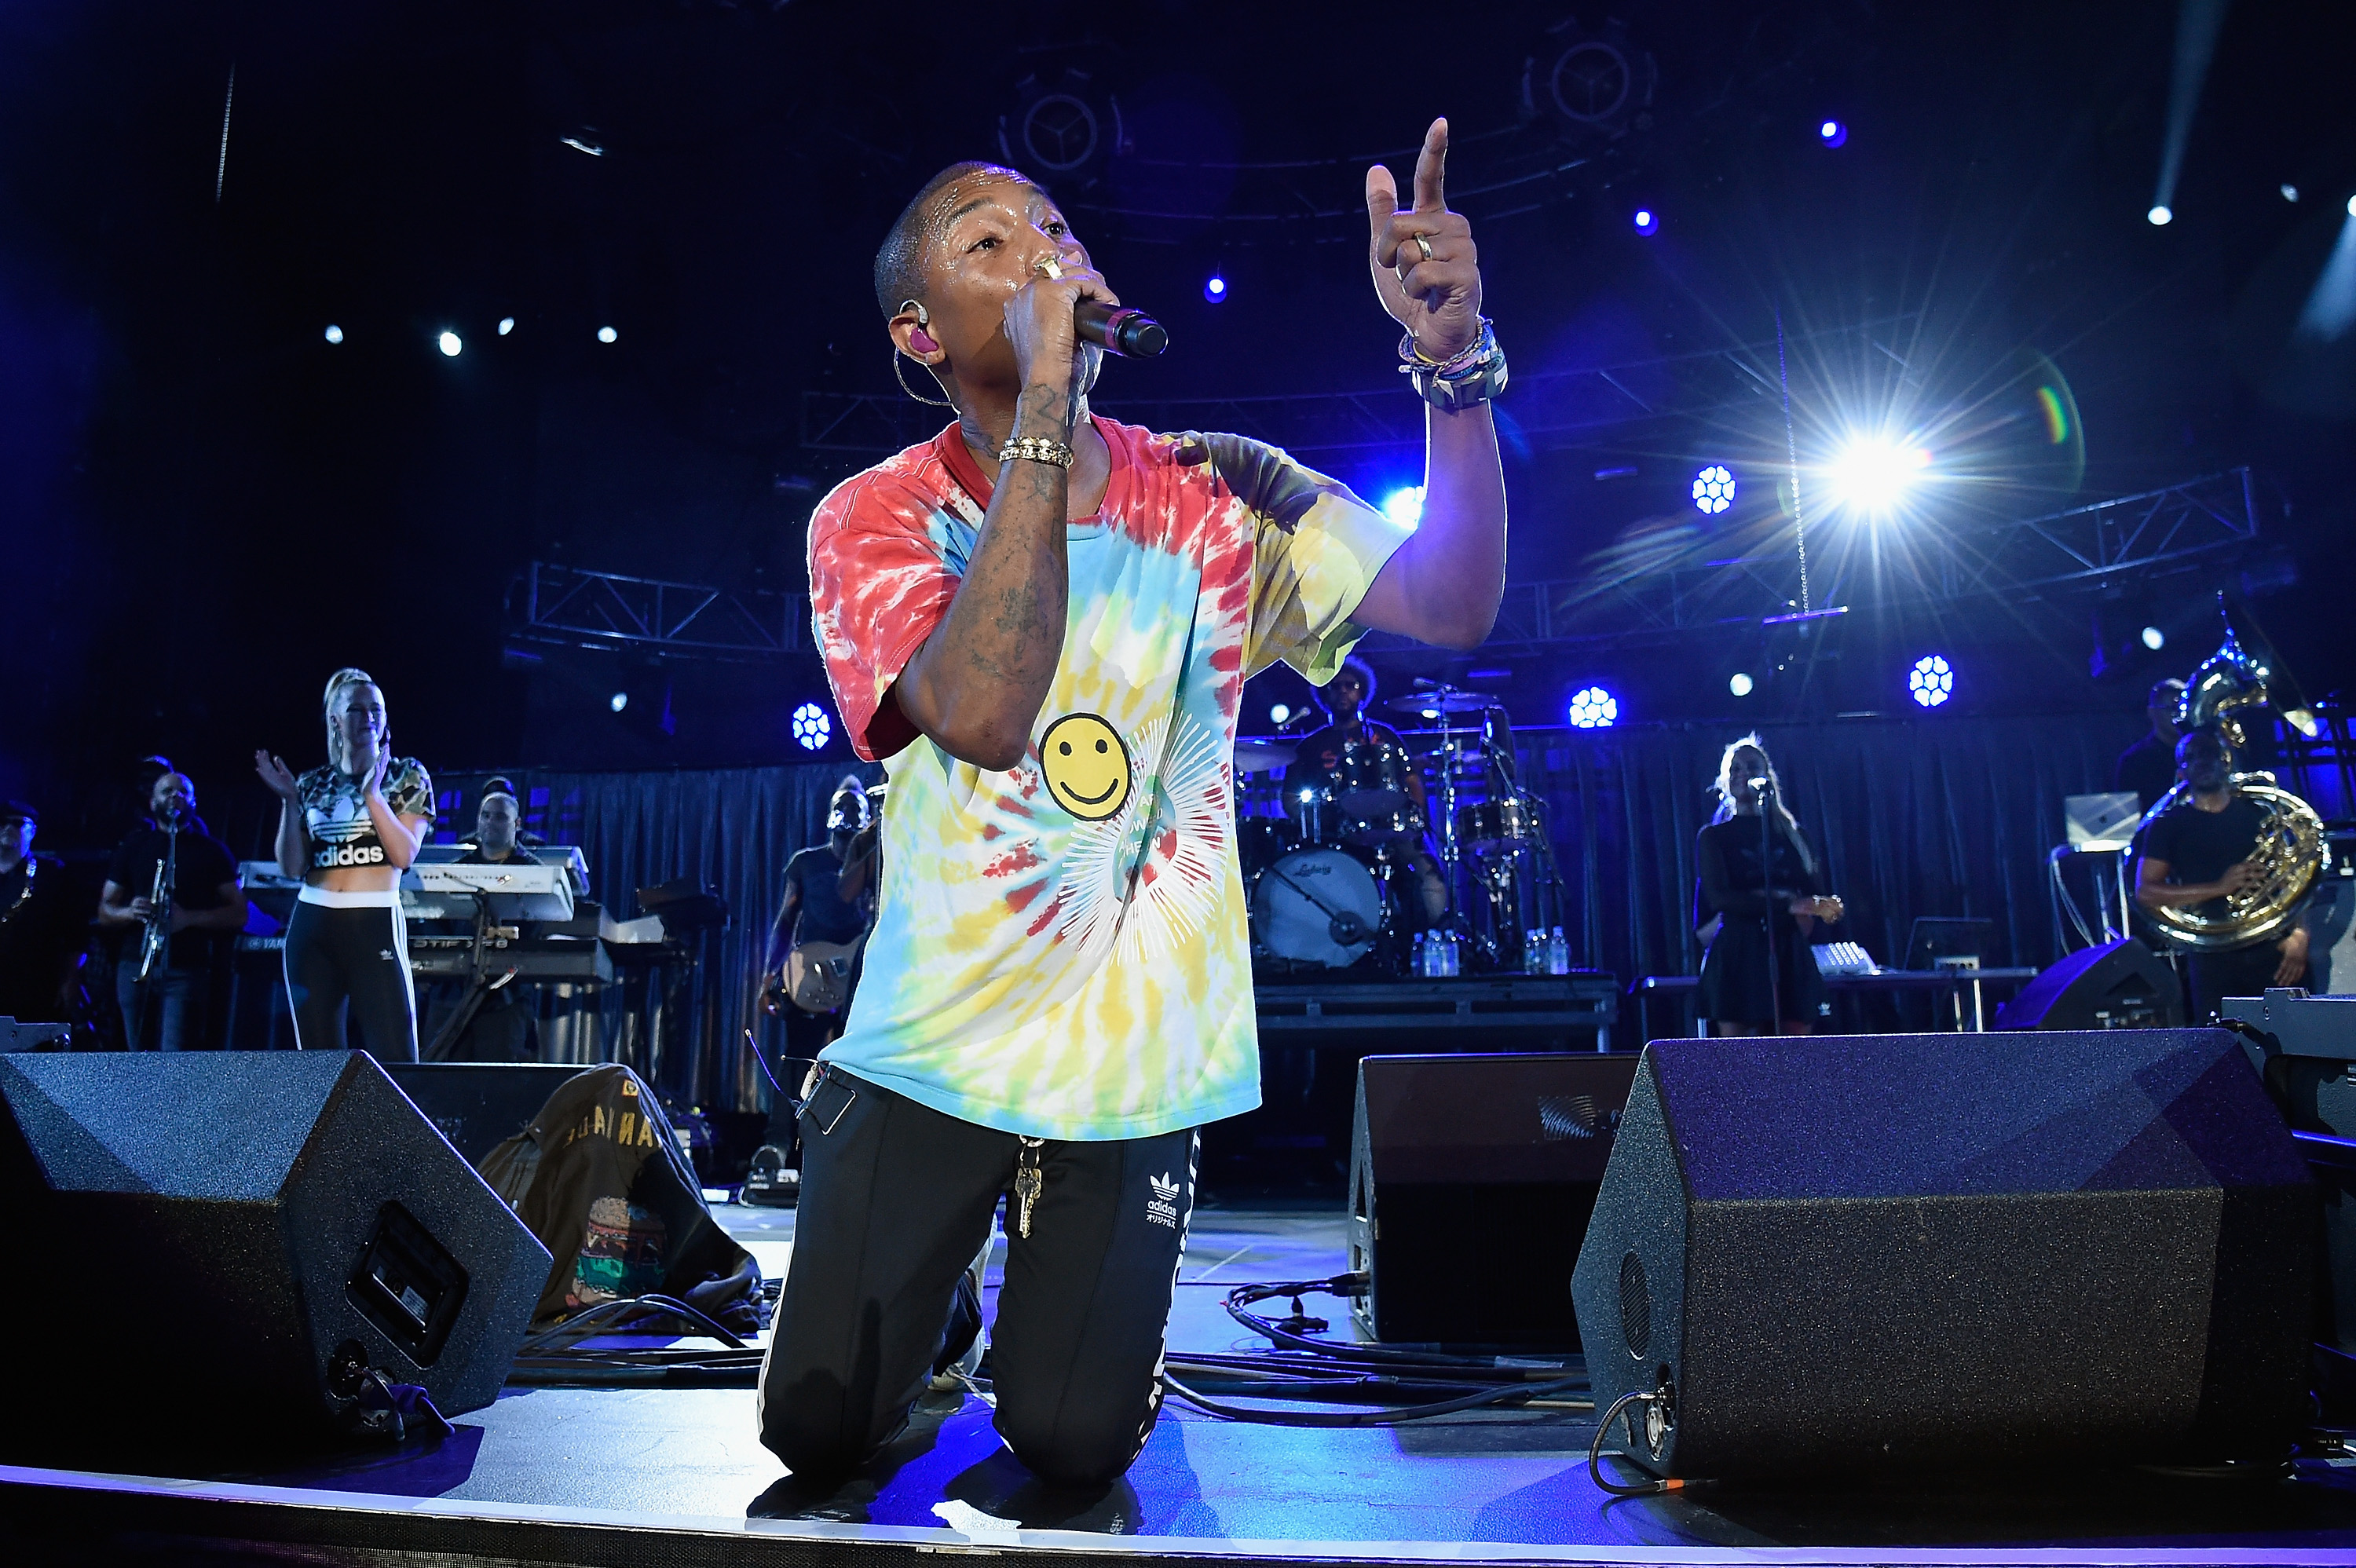 Pharrell Williams performs with The Roots at  A Concert for Charlottesville,  at University of Virginia's Scott Stadium in Charlottesville, Va., Sept. 24, 2017.